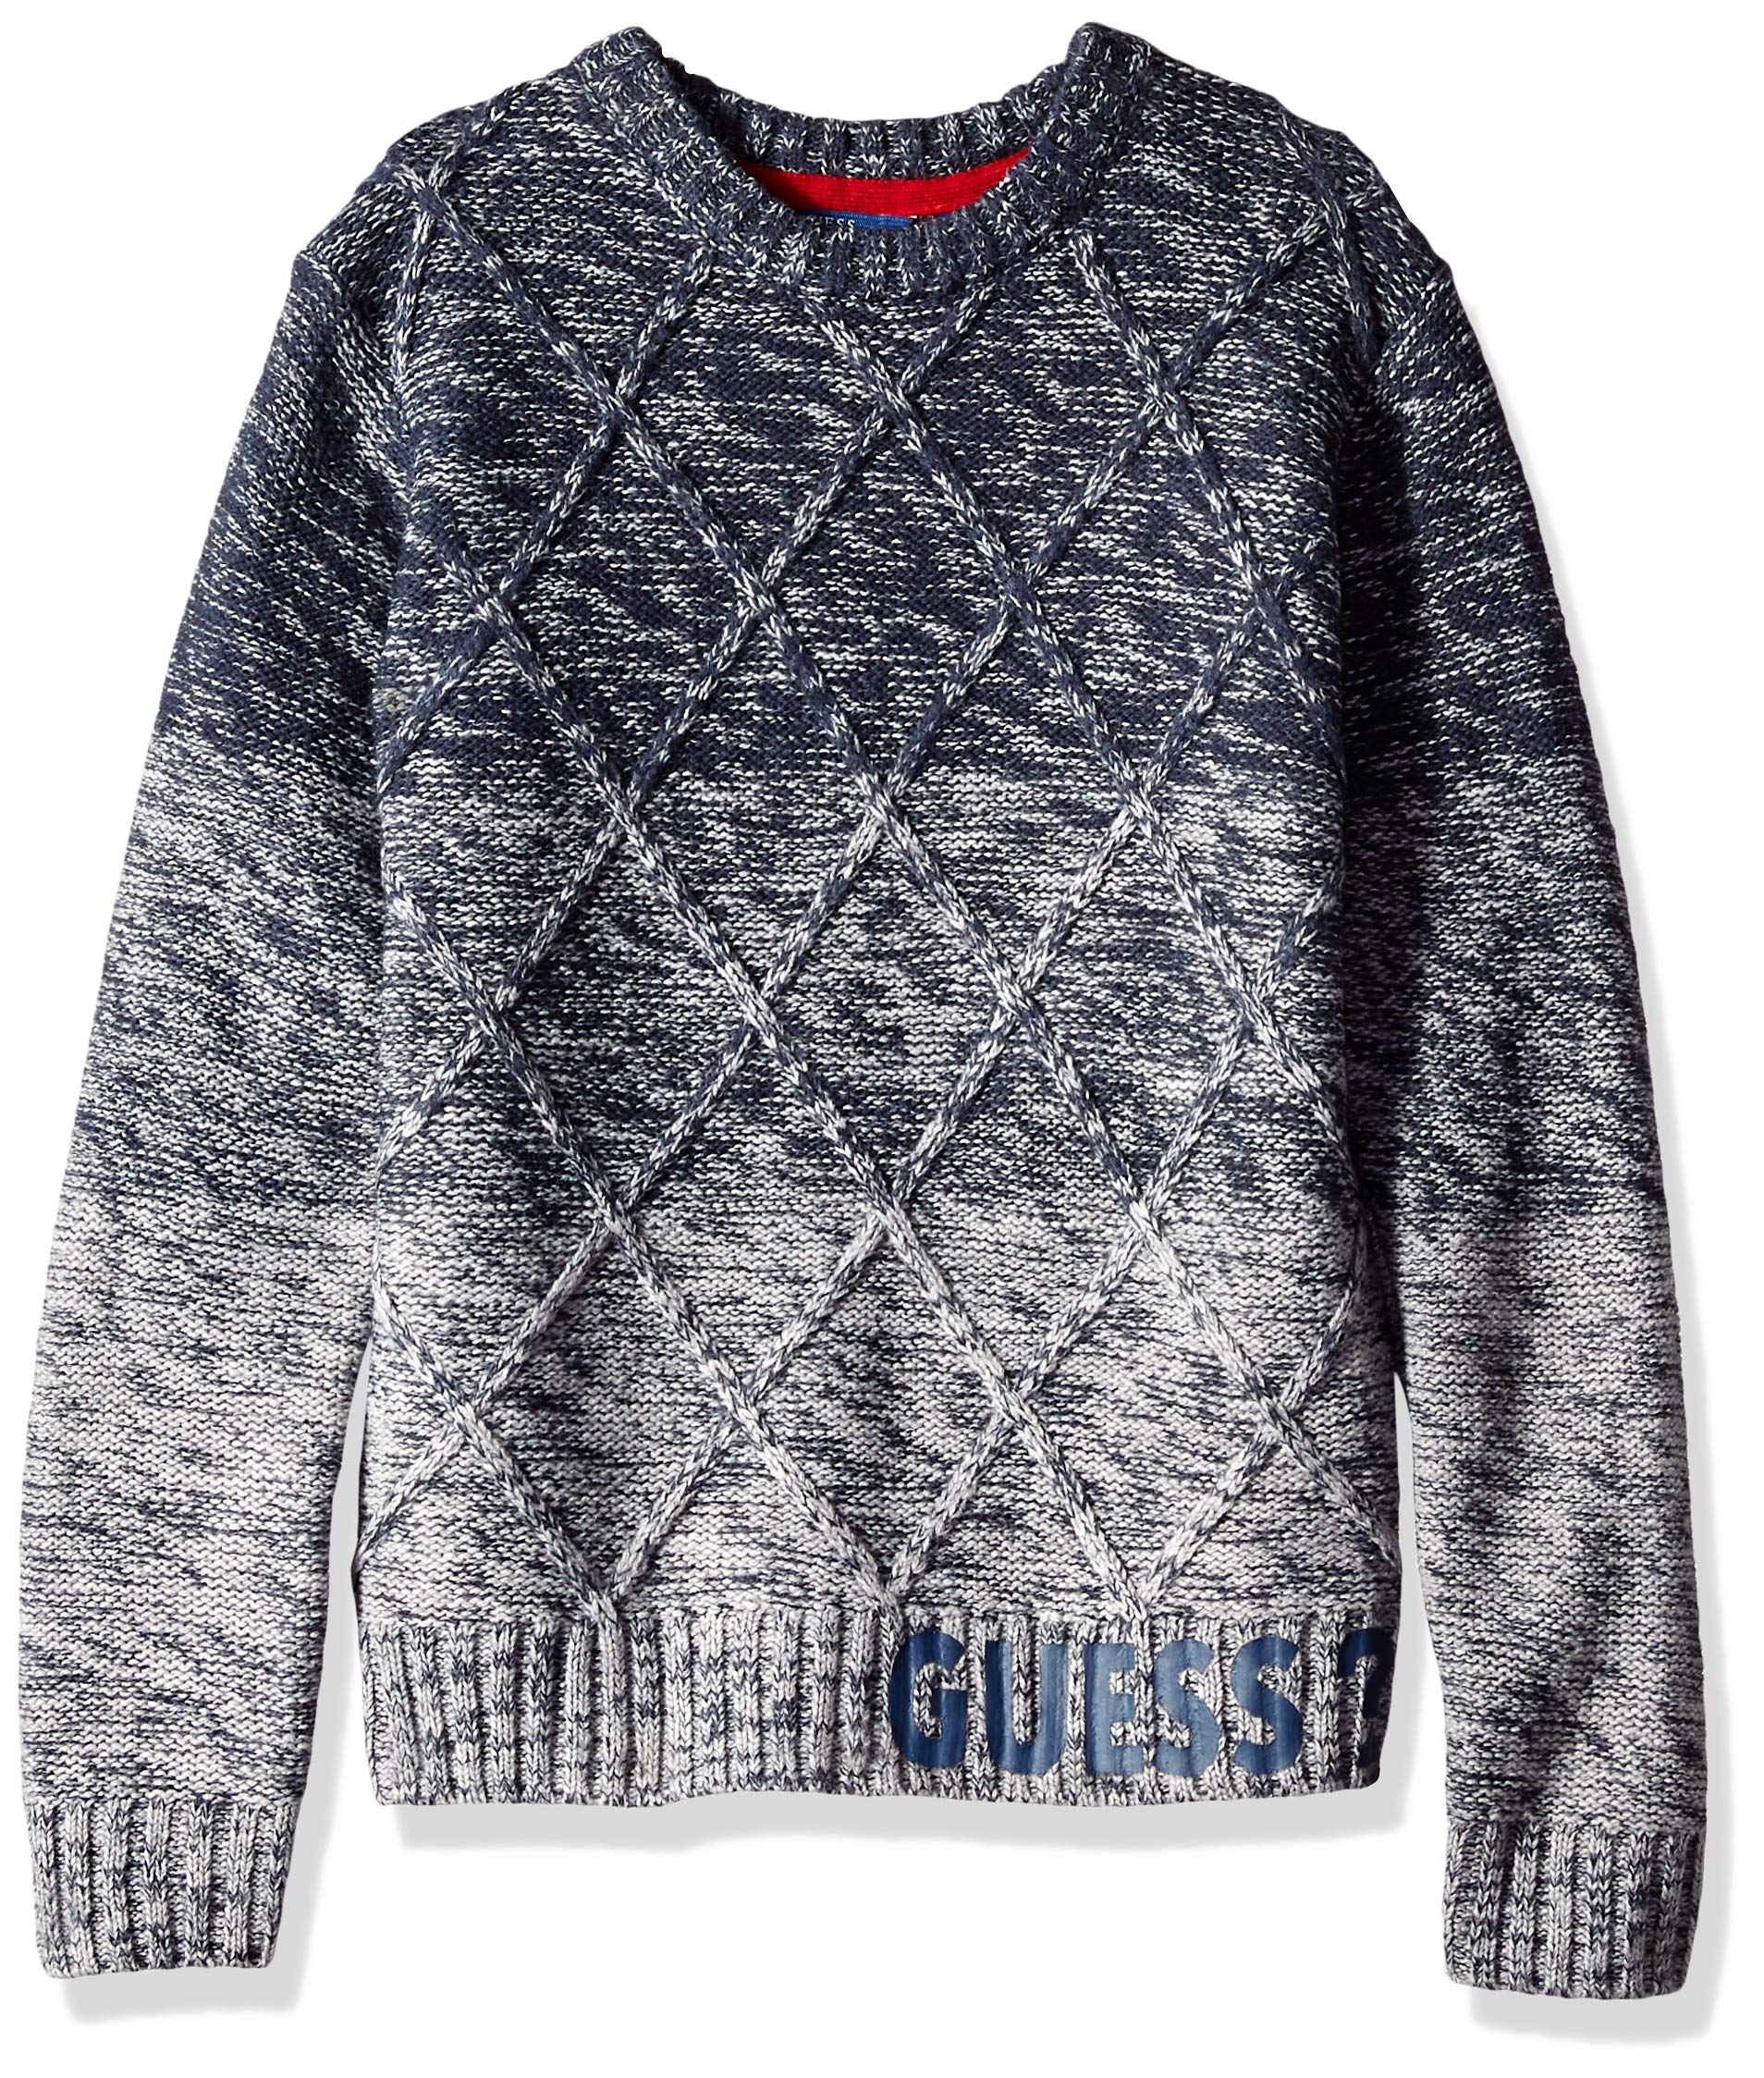 GUESS Boys' Big Long Sleeve Ombre Cable Knit Sweater, Blue Combo, 10